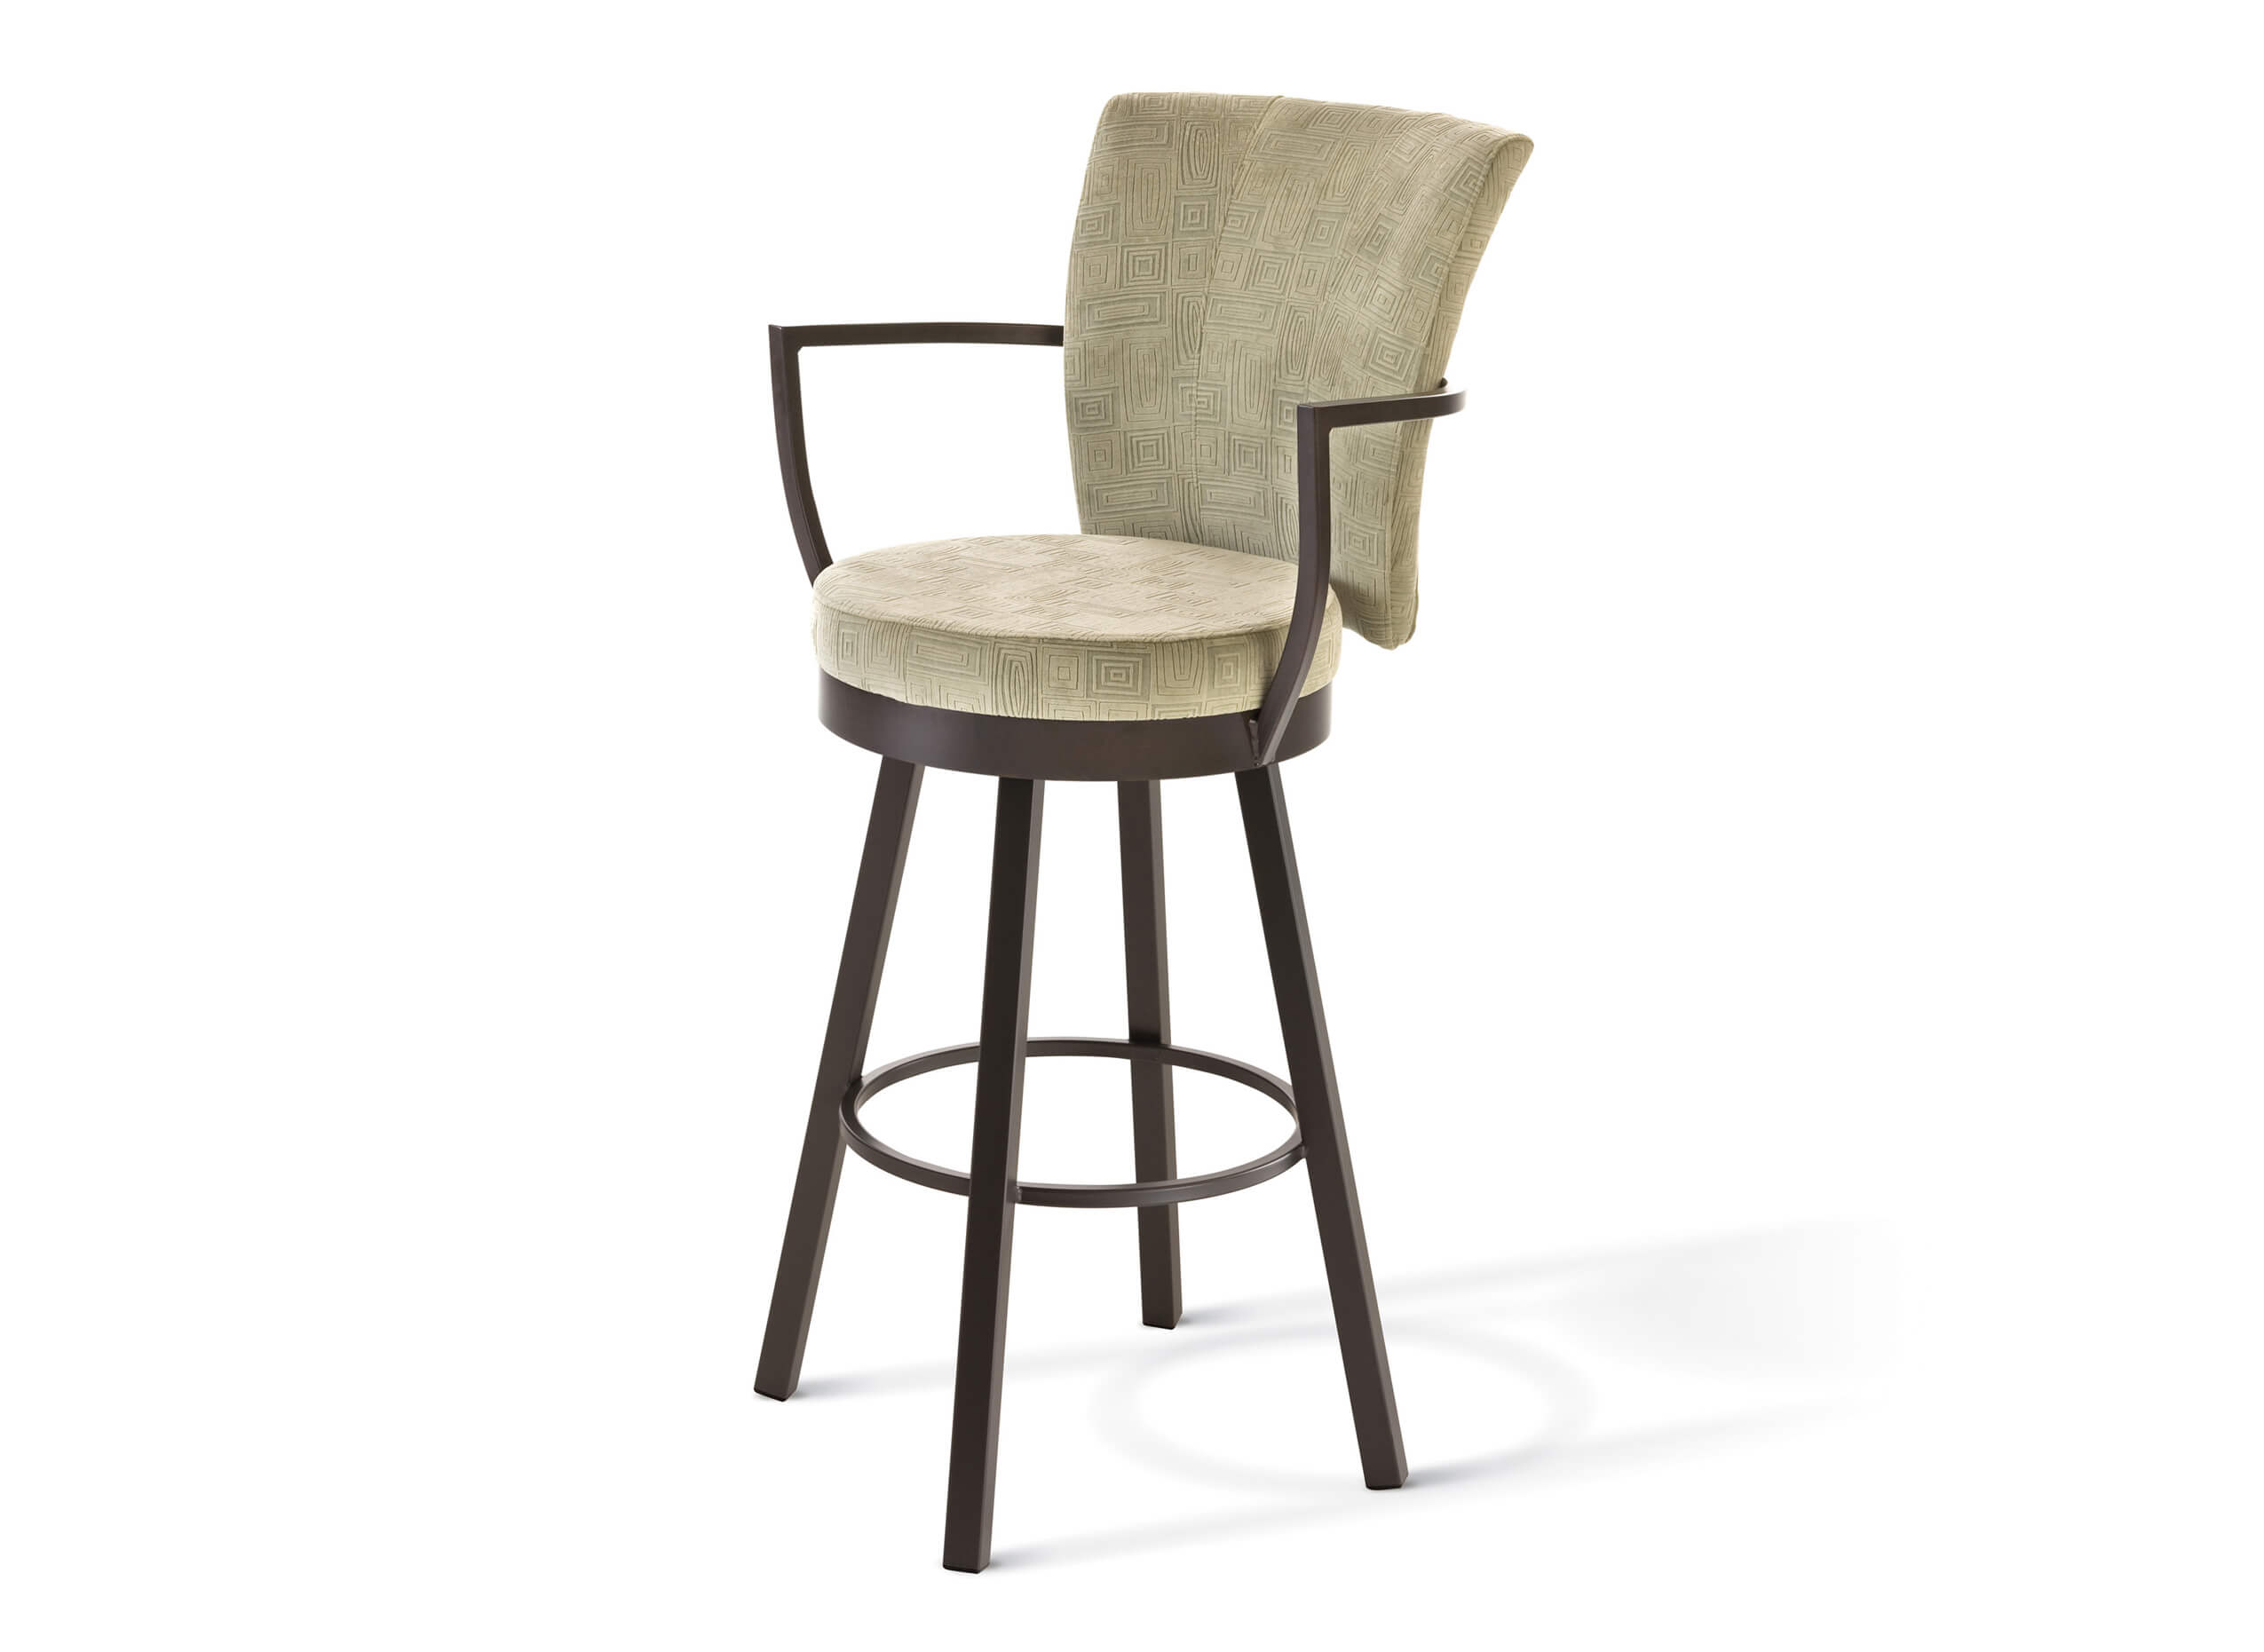 swivel kitchen chairs new design cardin bar stool bedrooms and more seattle